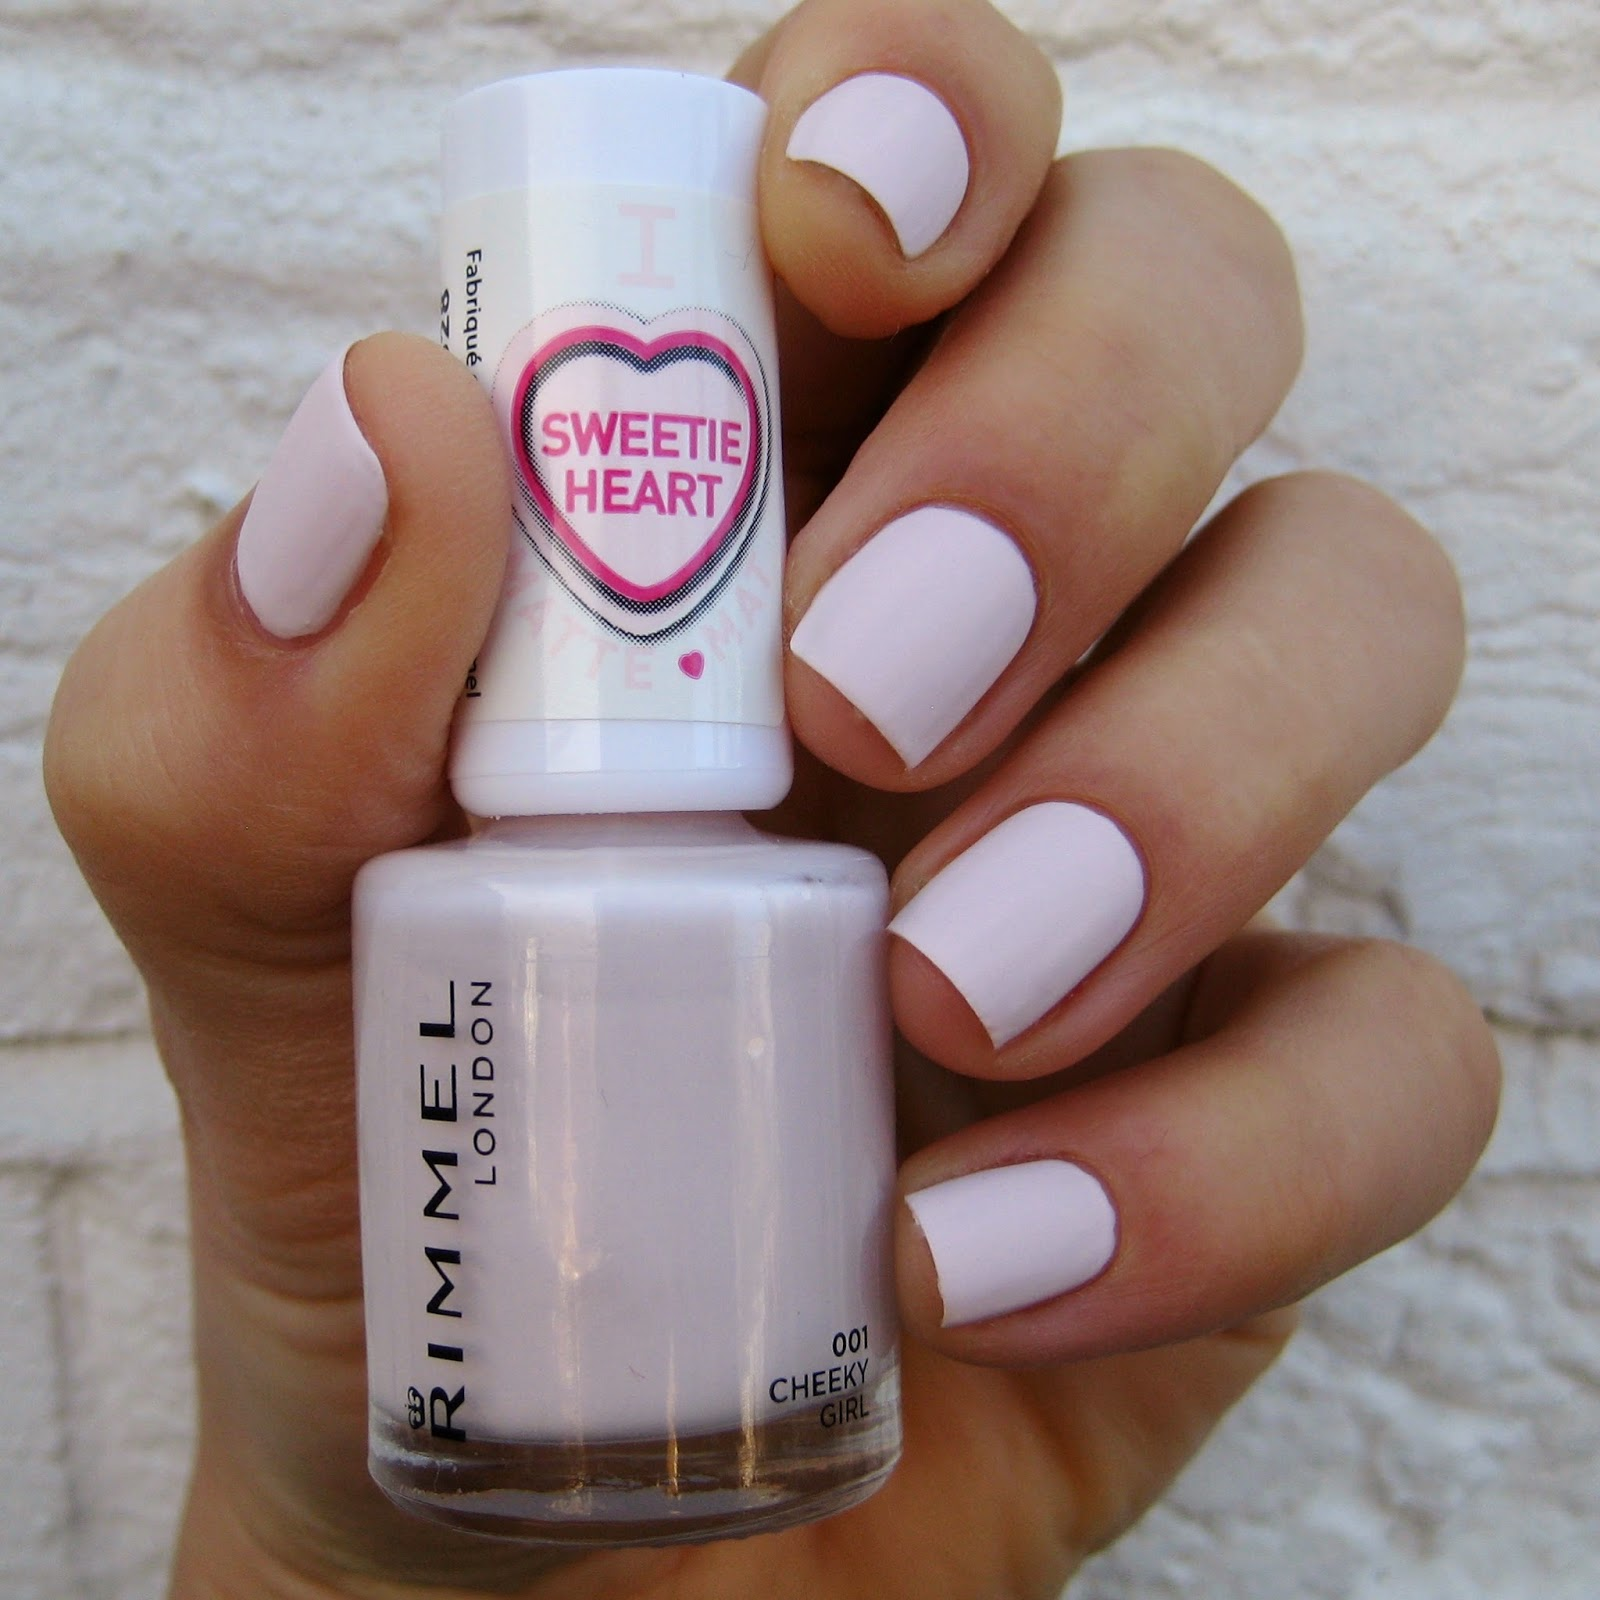 Rimmel London Sweetie Heart Matte Pastels Cheeky Girl